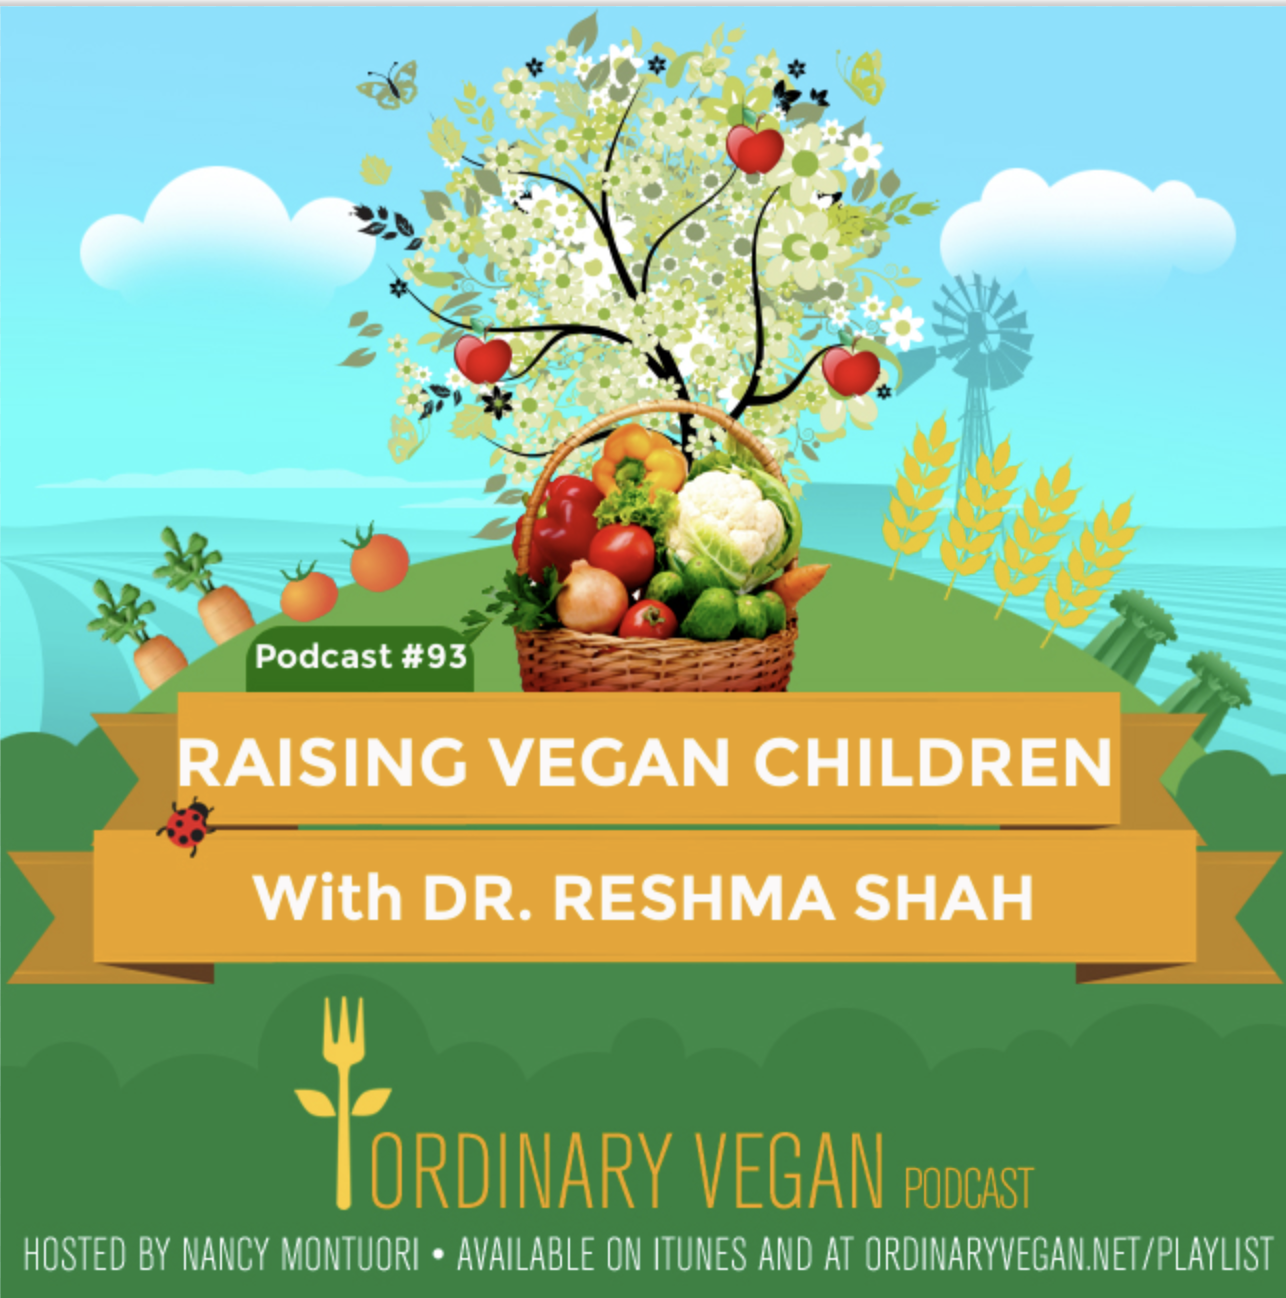 This podcast answers many of the common questions that often worry parents about raising vegan children. (#vegan) ordinaryvegan.net